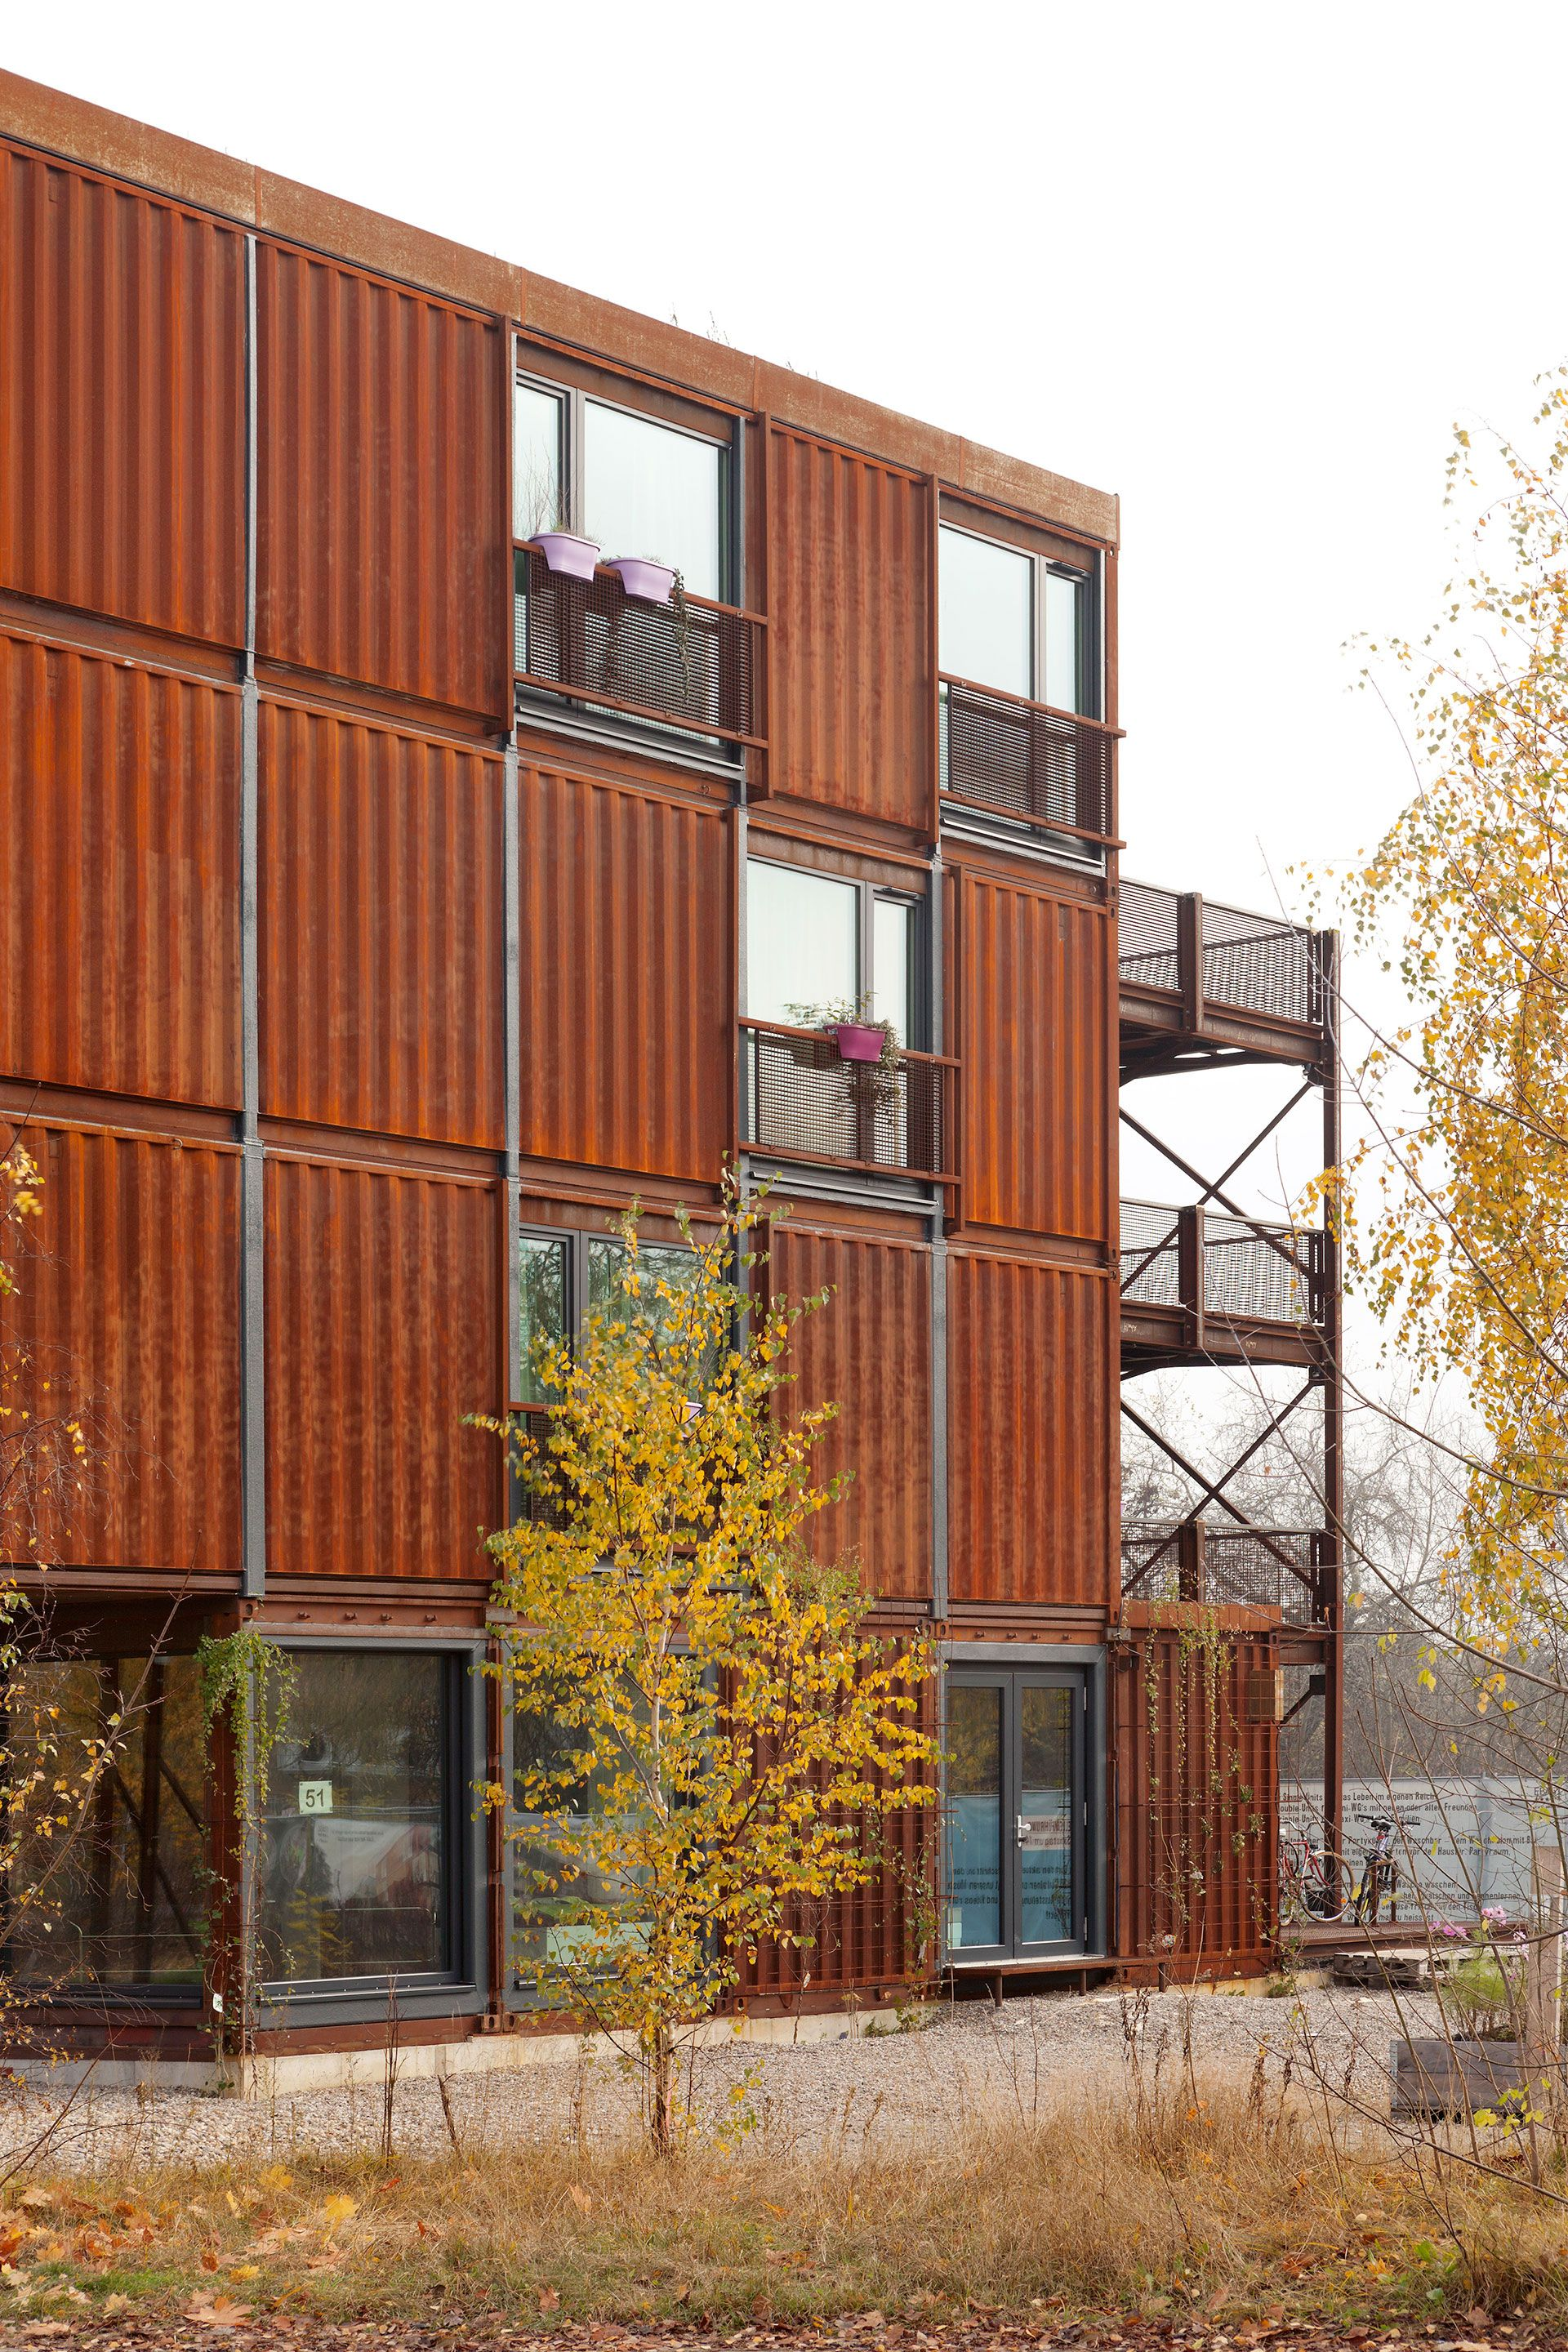 Container Haus Berlin Planterwald Berlin Student Housing Shipping Containers